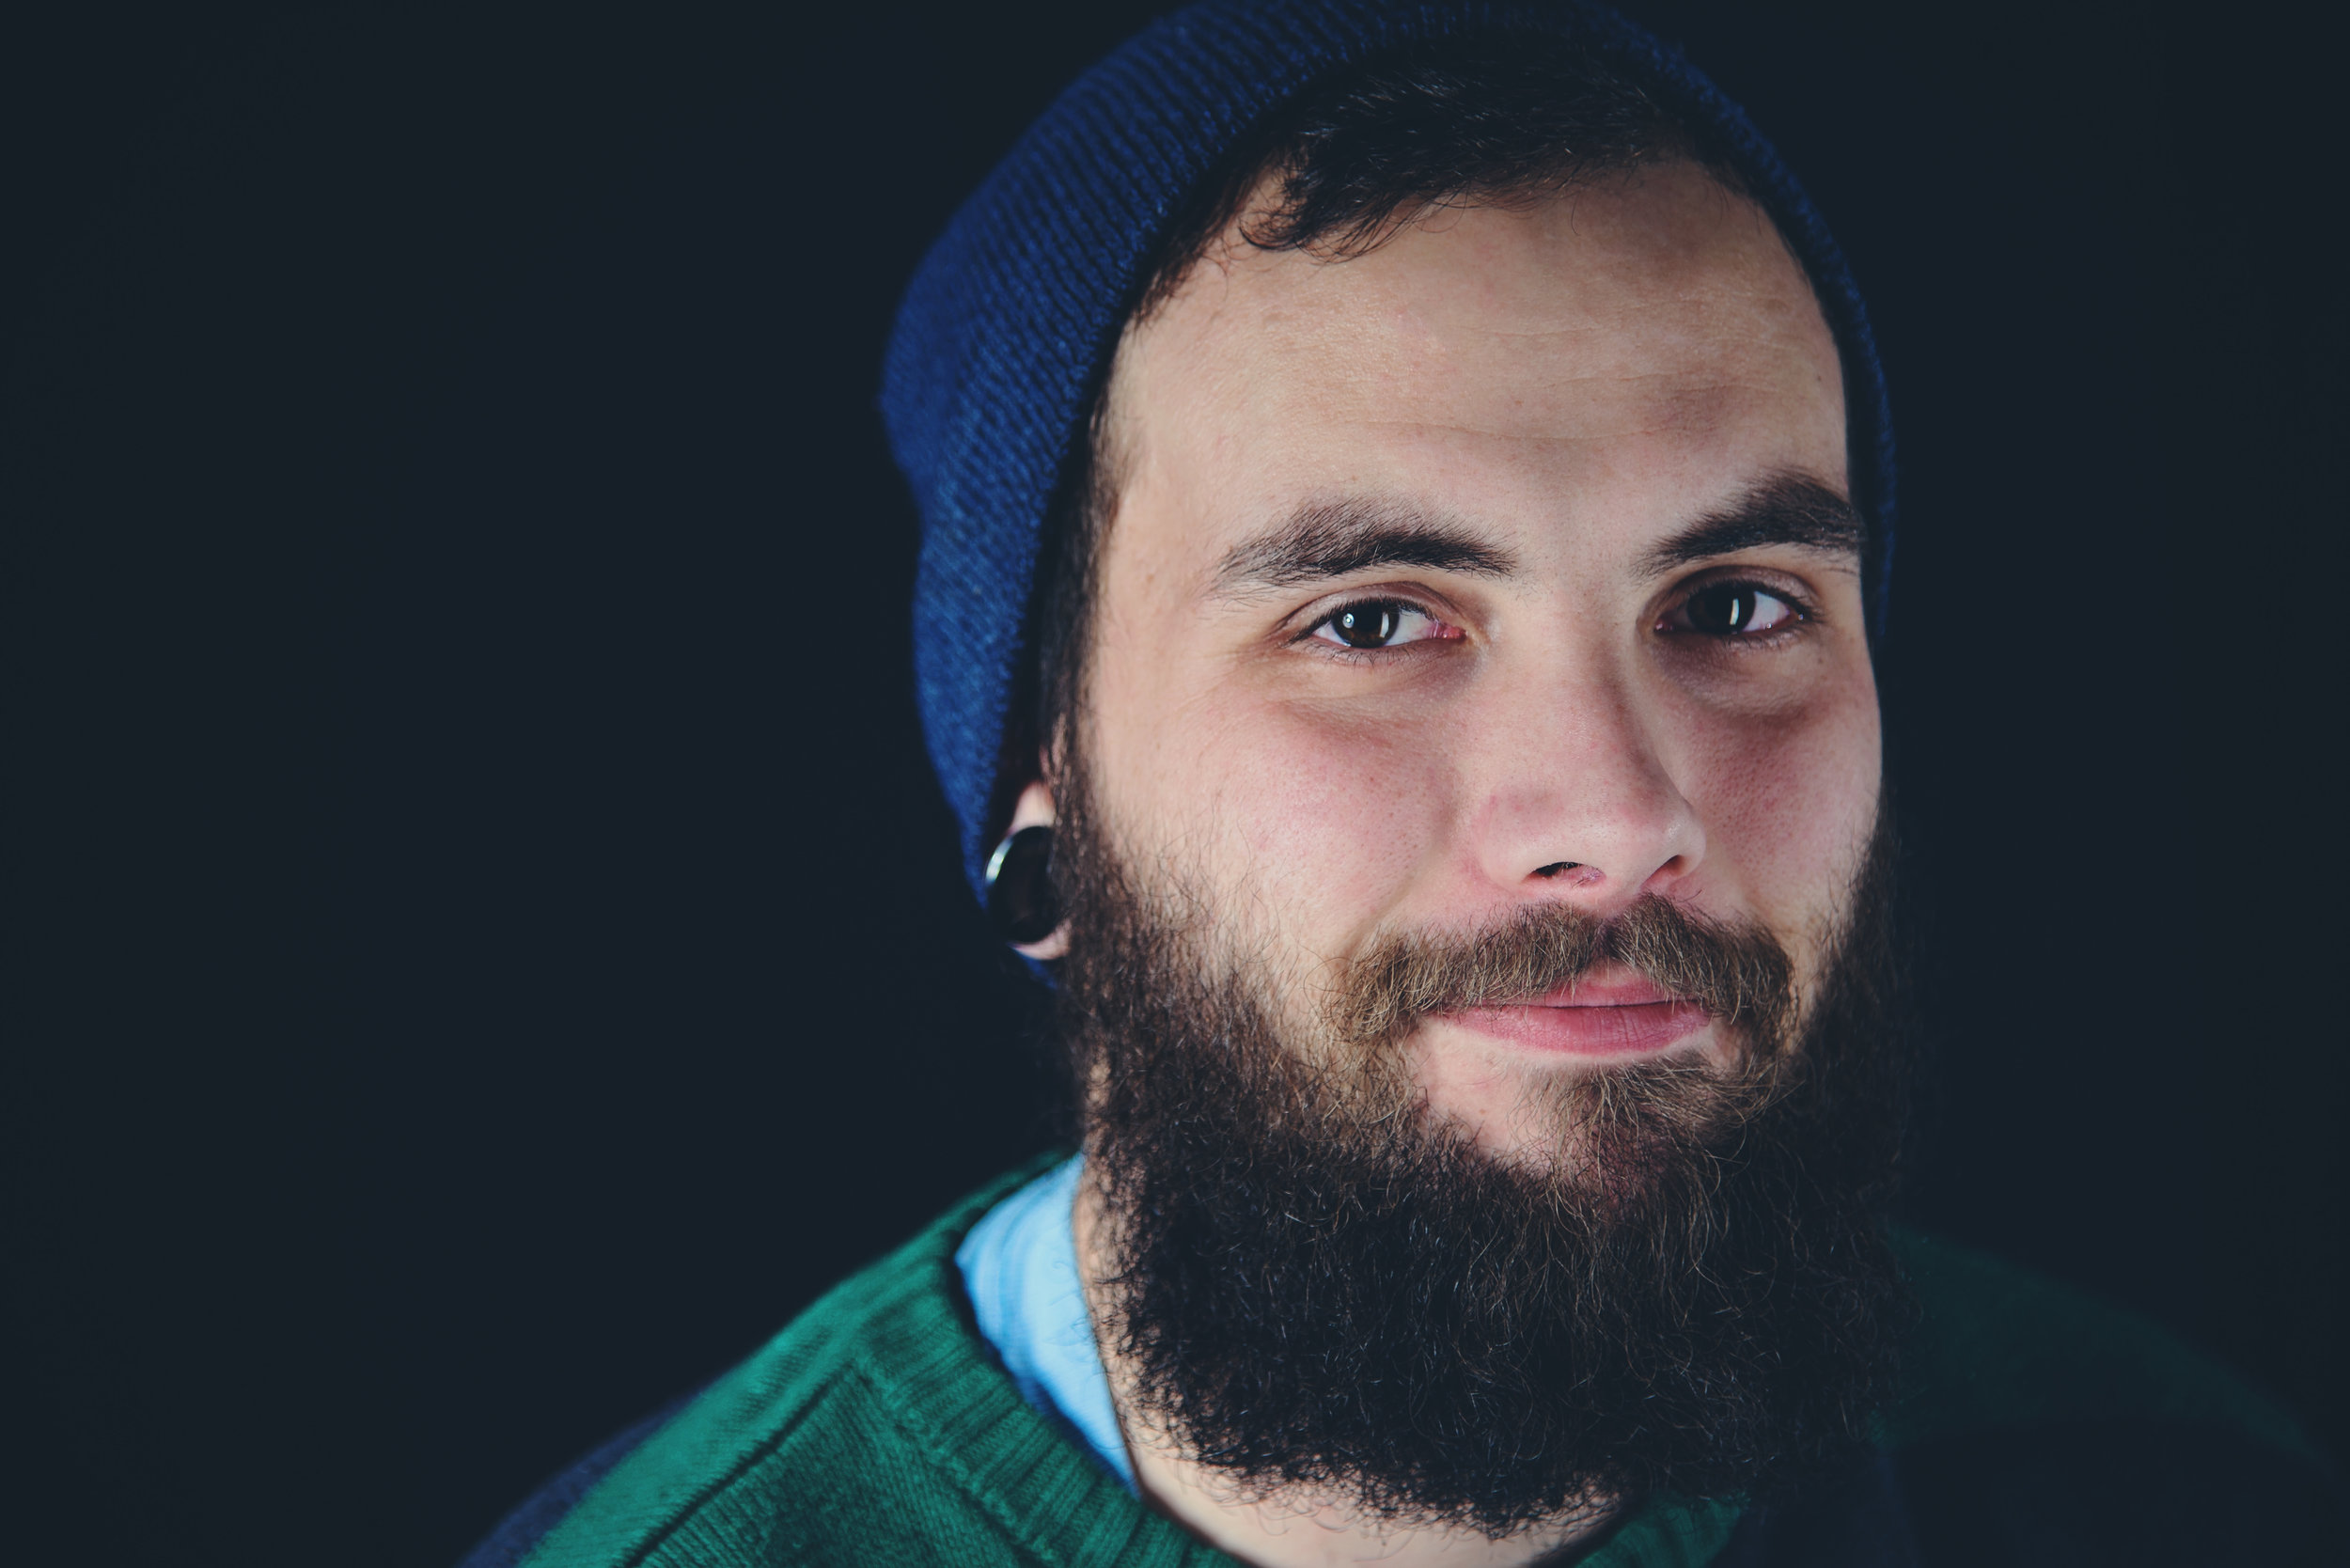 Matt Davenport Maineville Music Academy No Shave November Remember When Portraits